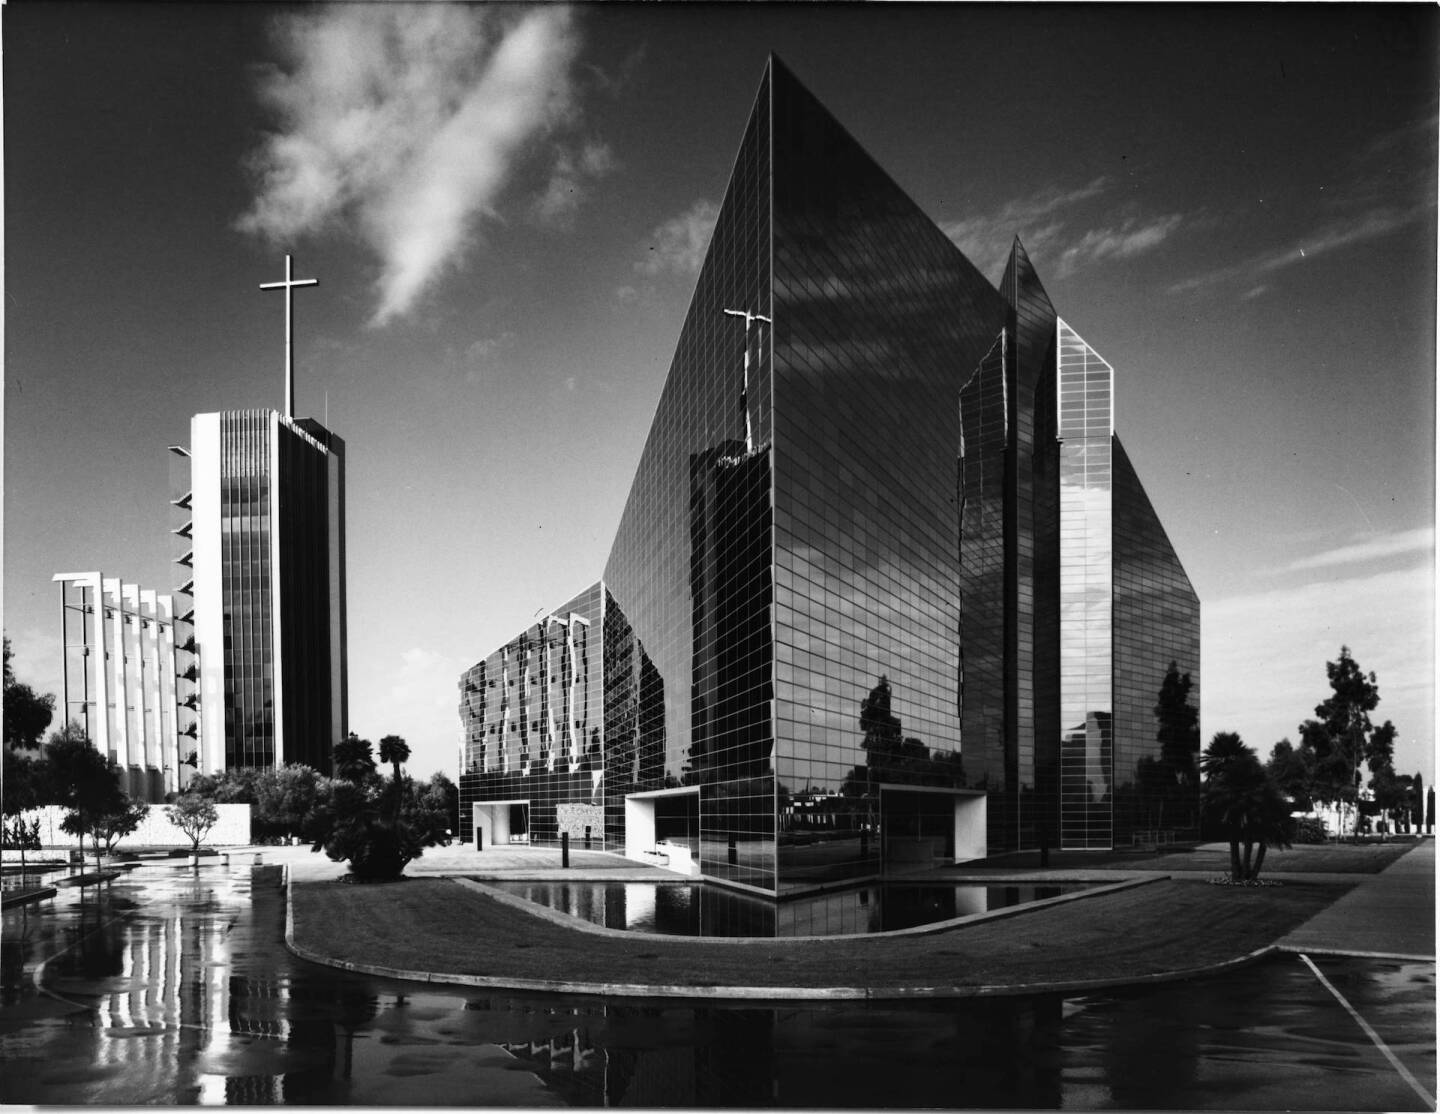 Circa 1980 photo of Orange County's Crystal Cathedral